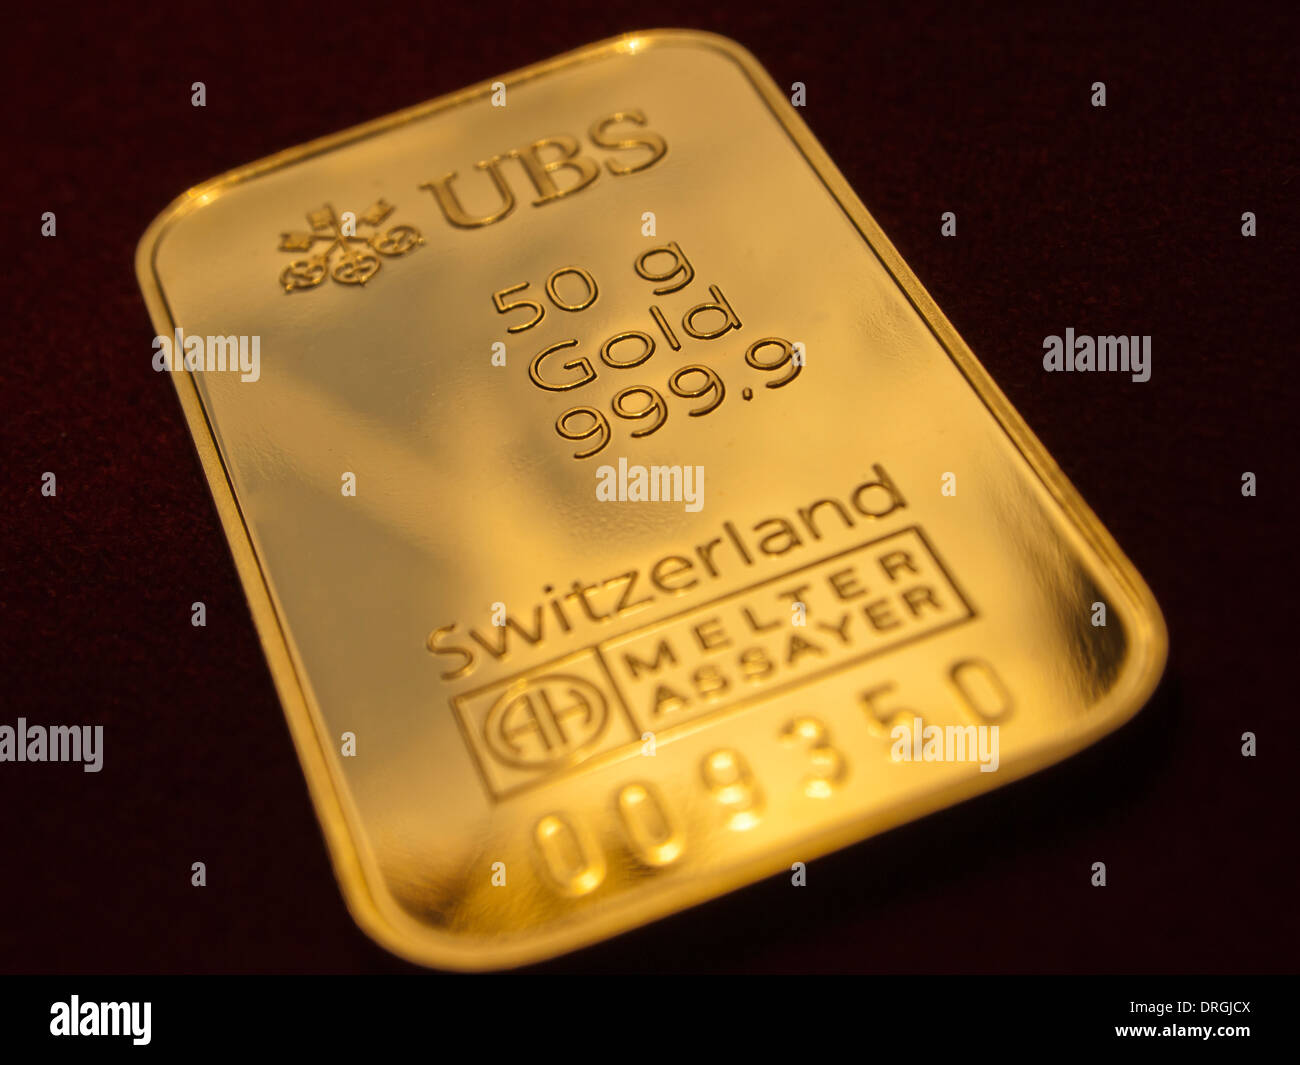 A 50g gold ingot issued by the Swiss bank UBS. - Stock Image